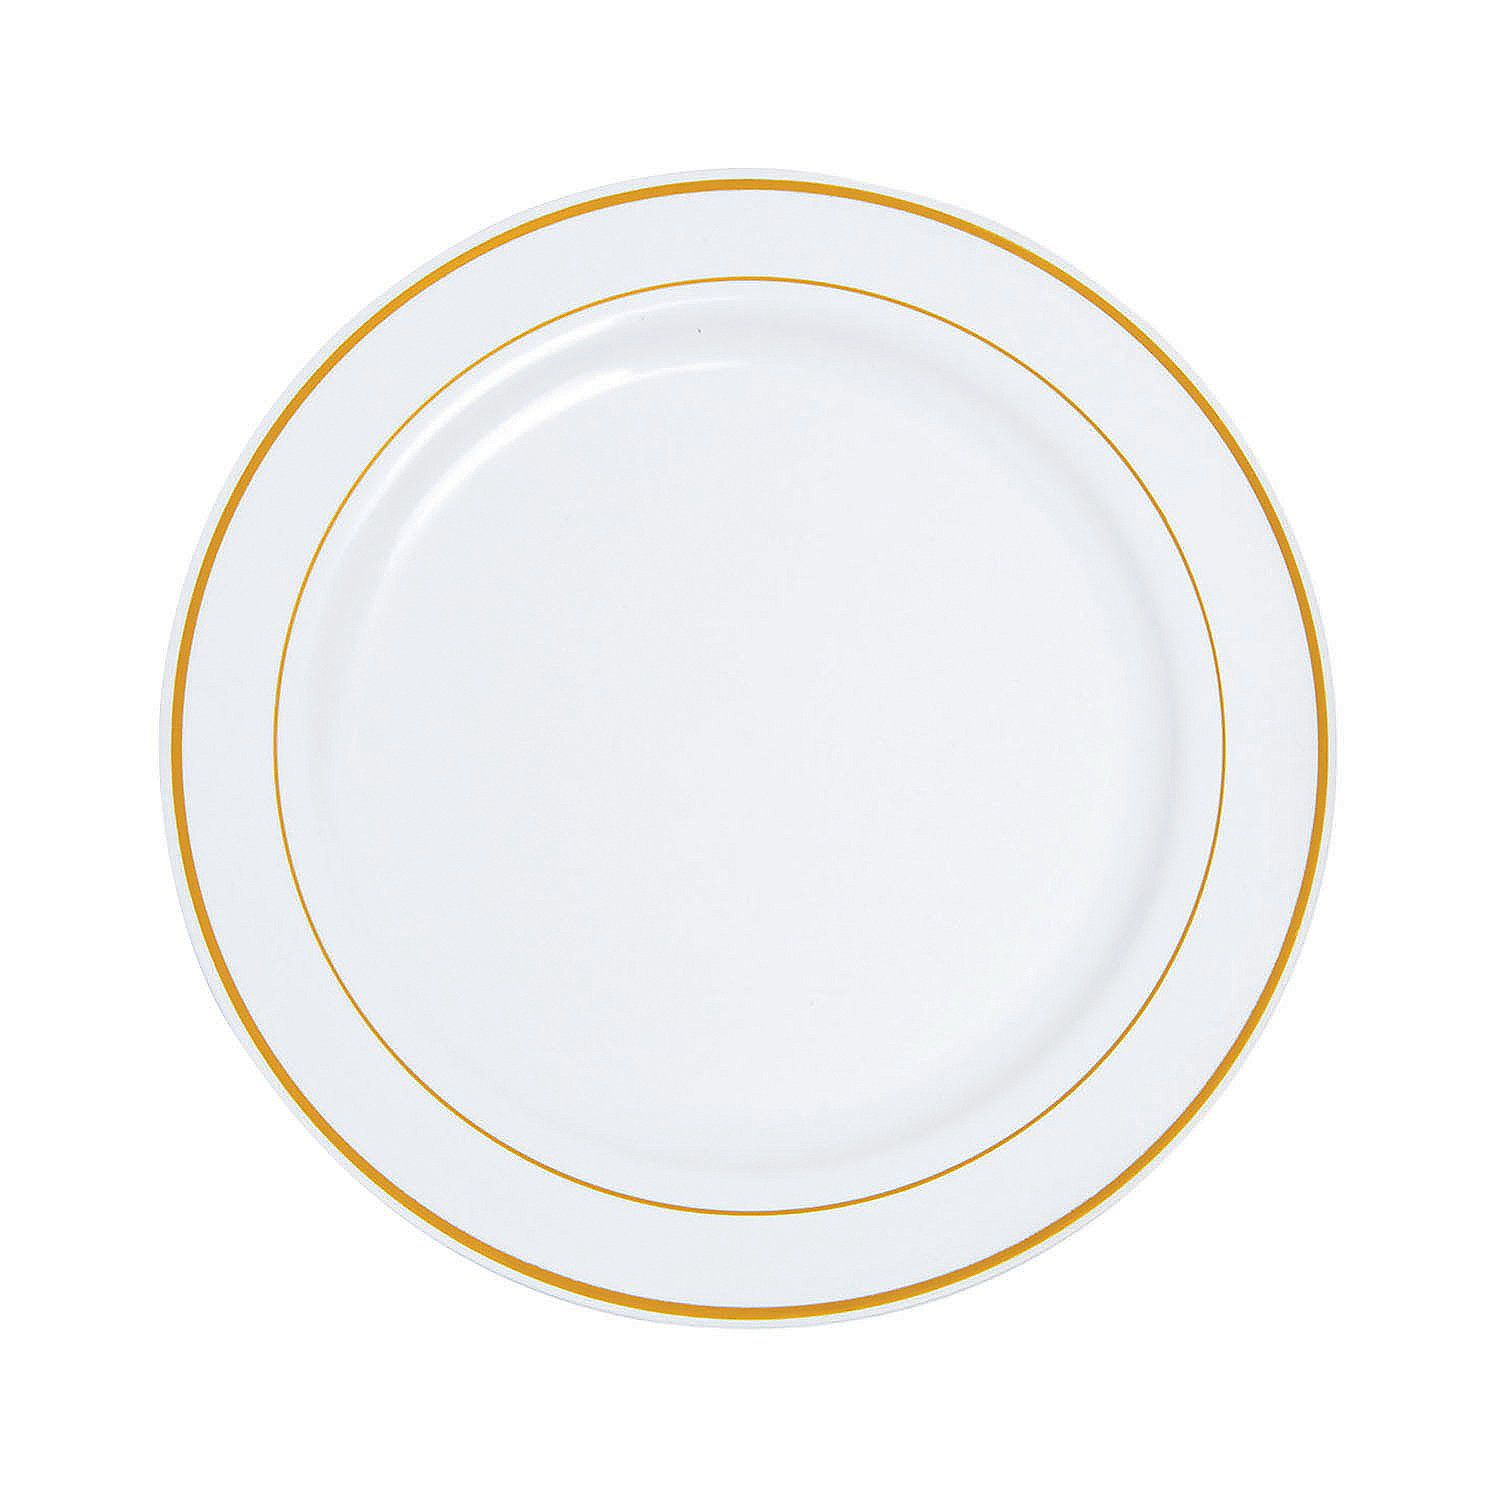 10 Premium White Plastic Dinner Plates With Gold Trim 25 Ct Clear Plastic Plates Anniversary Dinner White Baby Showers